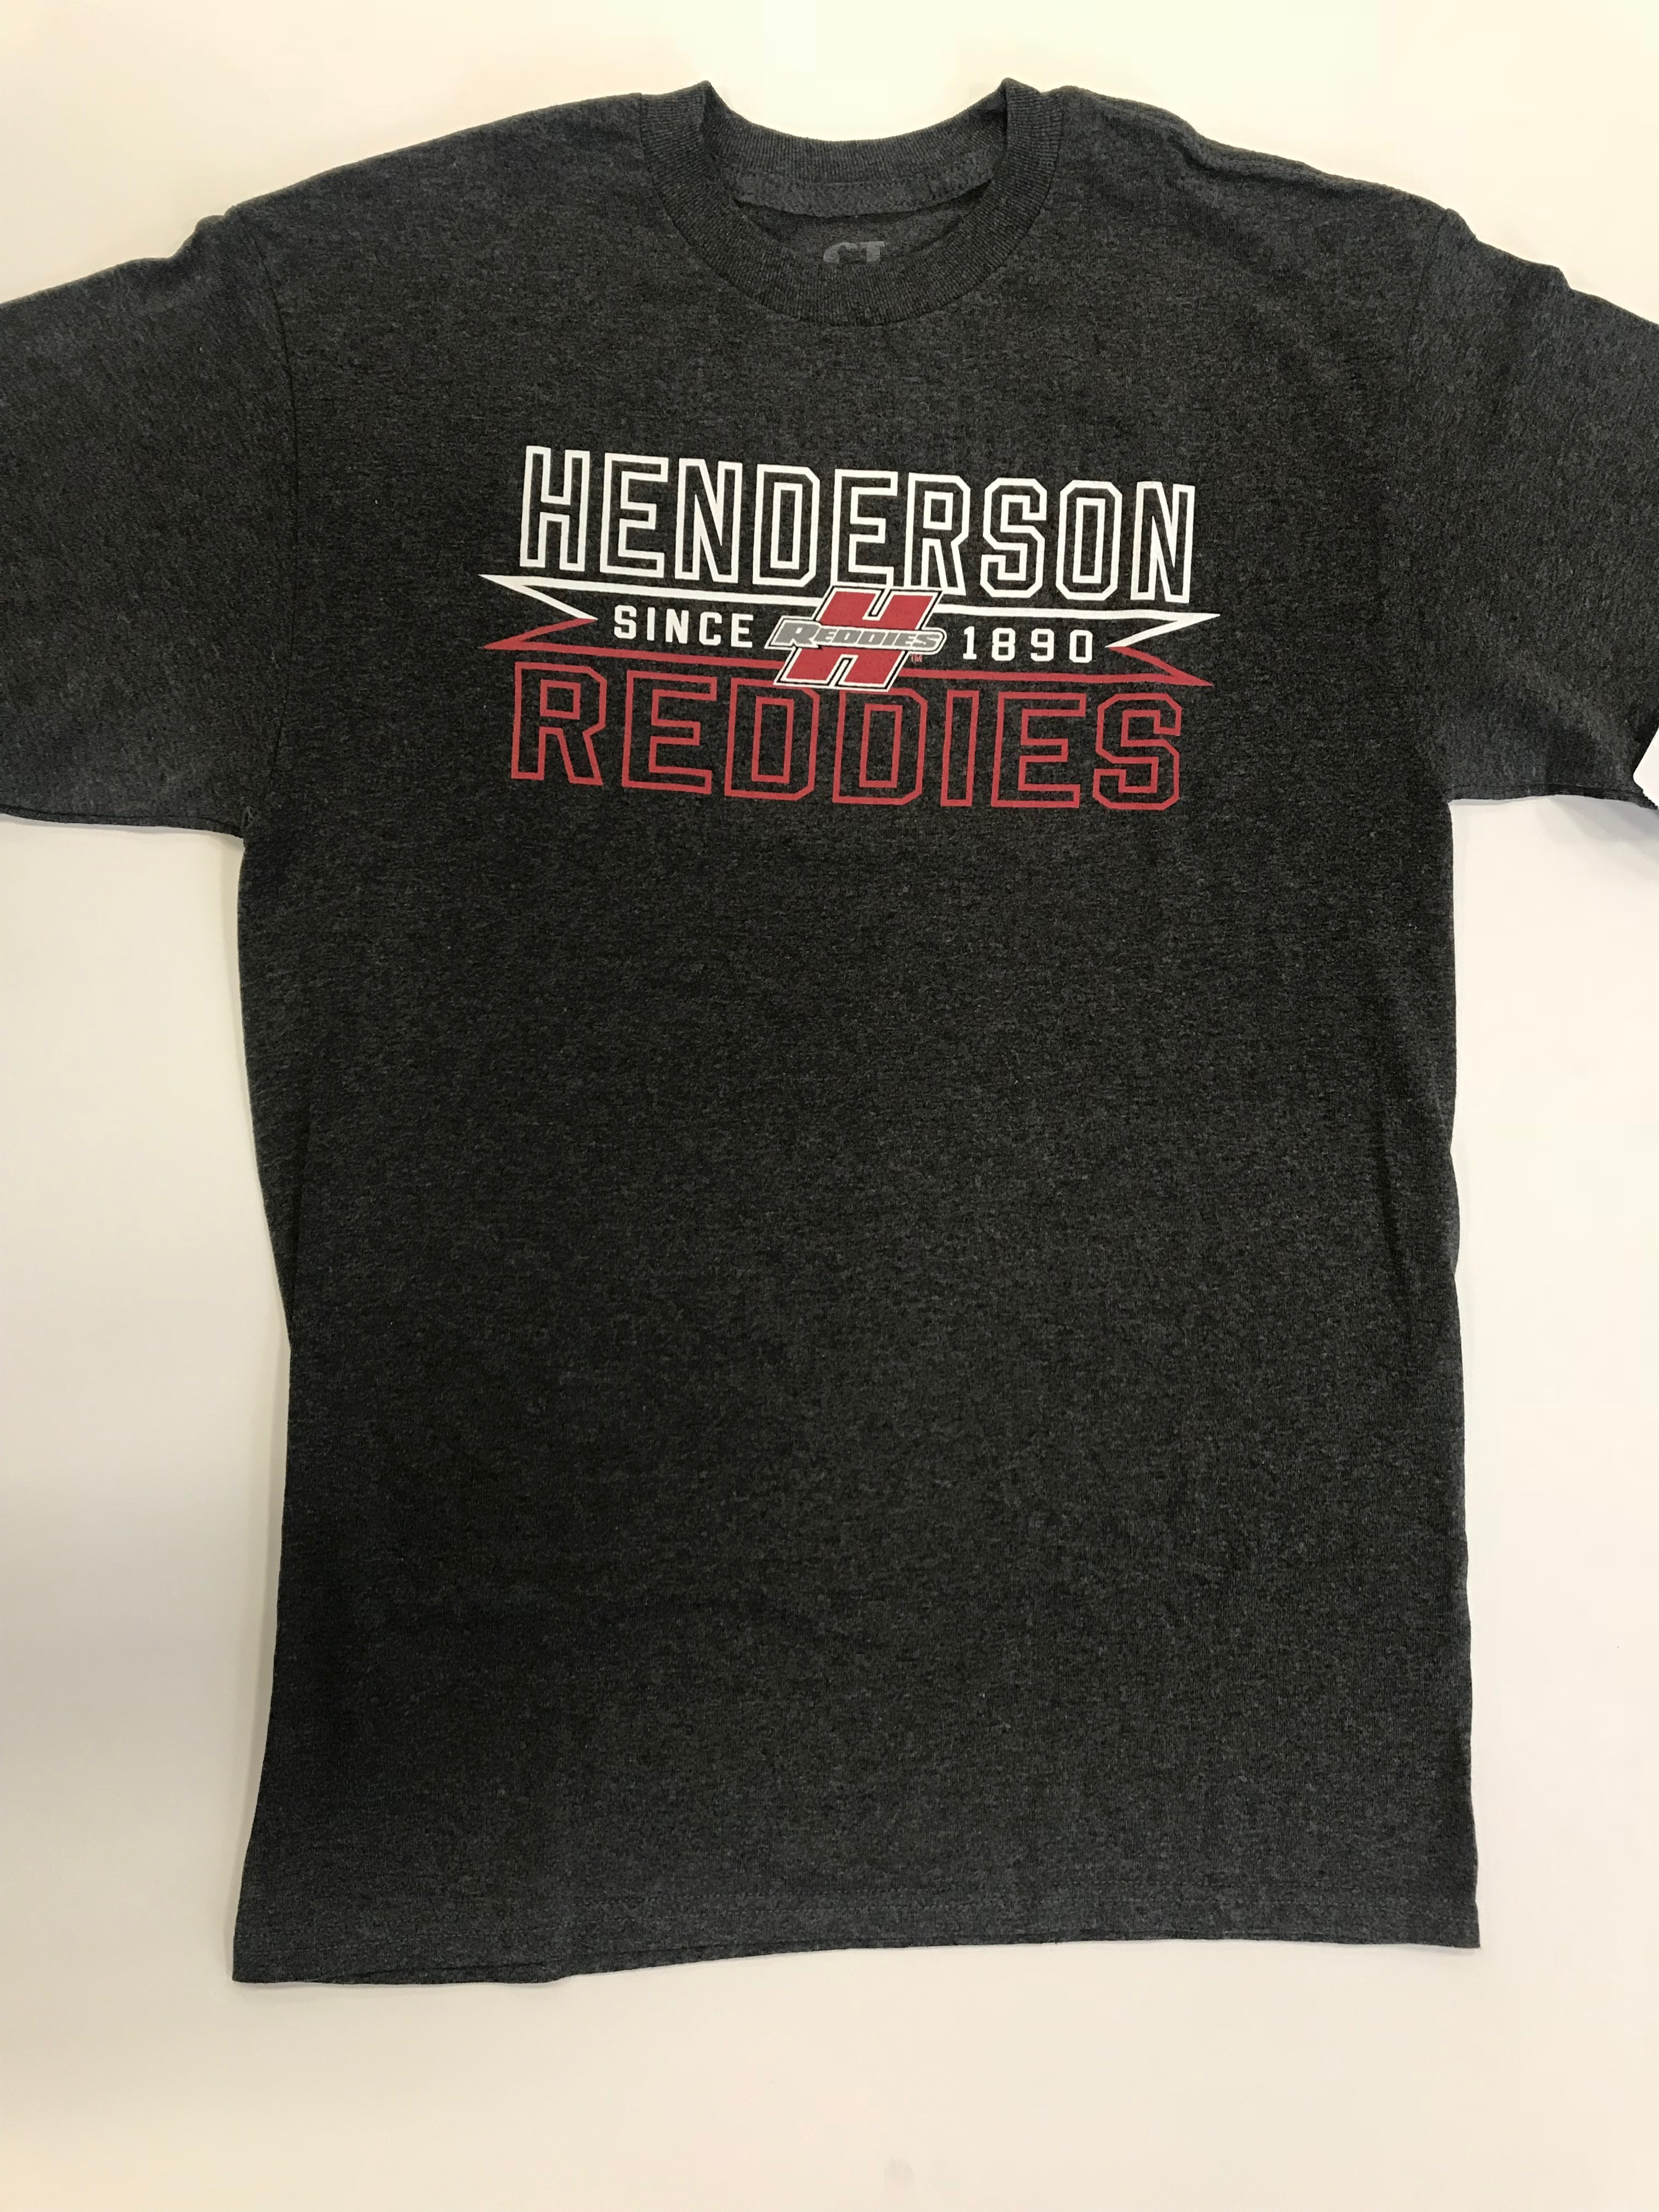 HENDERSON STATE SINCE 1890 TEE